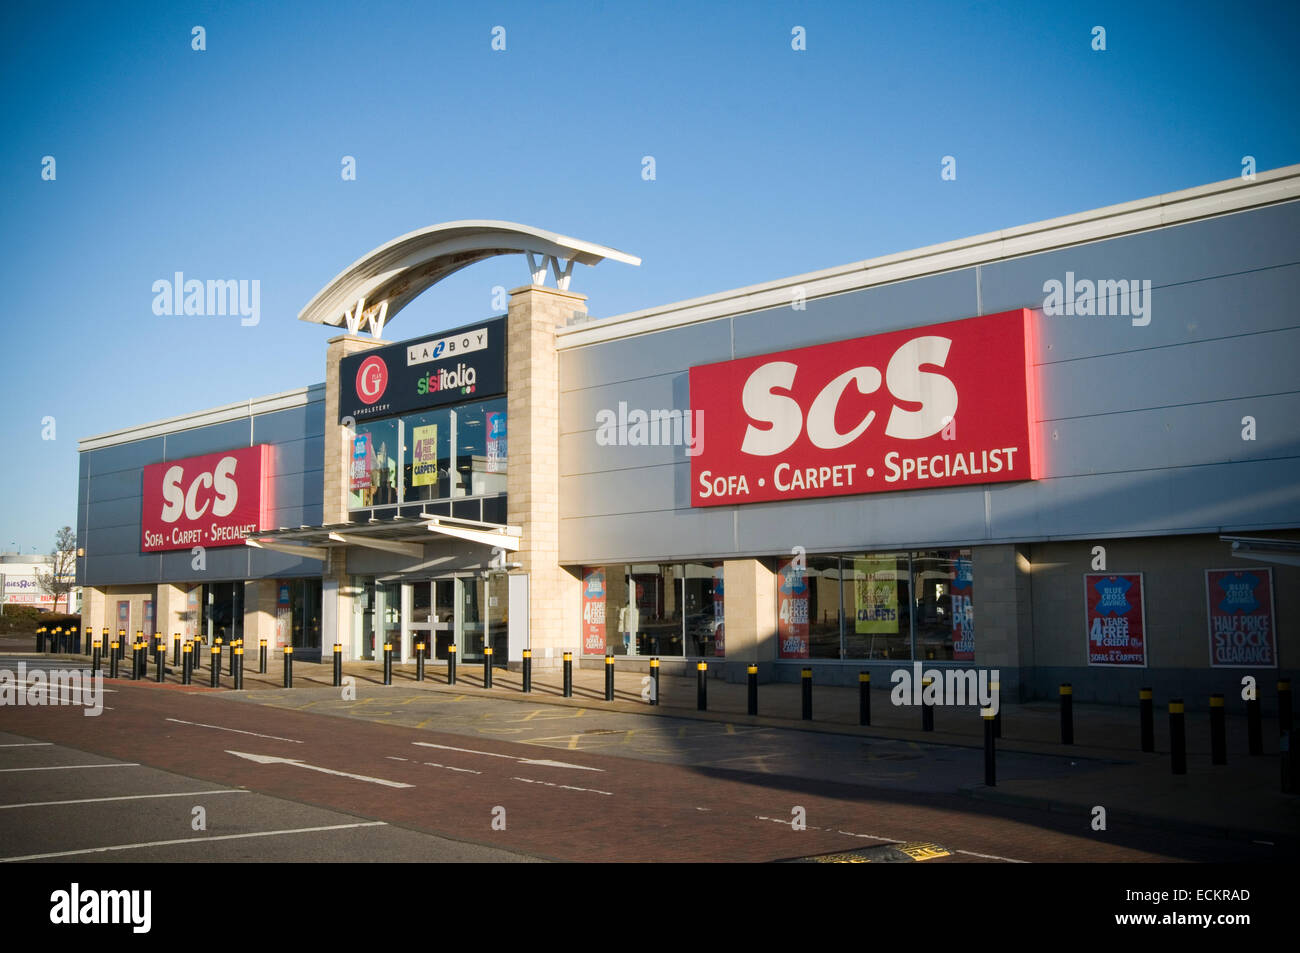 Marvelous Scs Sofa Carpet Specialist Super Store Stores Shop Shops Chain Chained  Household Furnishings